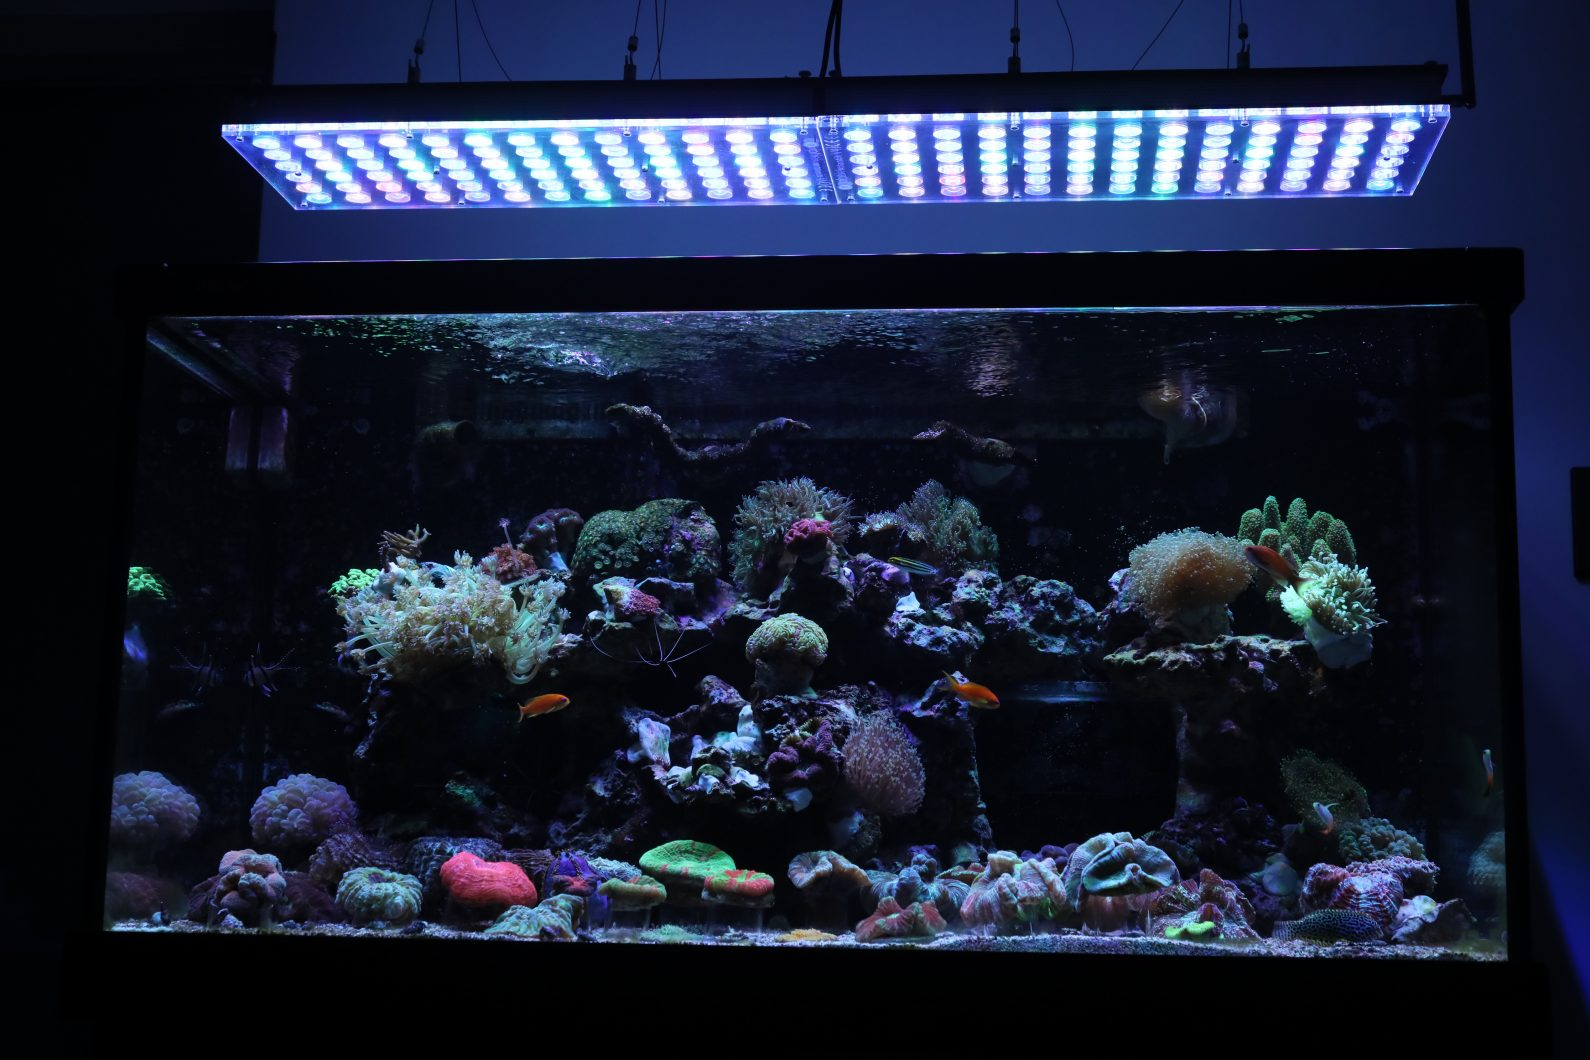 Orphek_Reef_Aquarium_LED_Light_Atlantik_v4_best_LED_Aquarium_lighting22